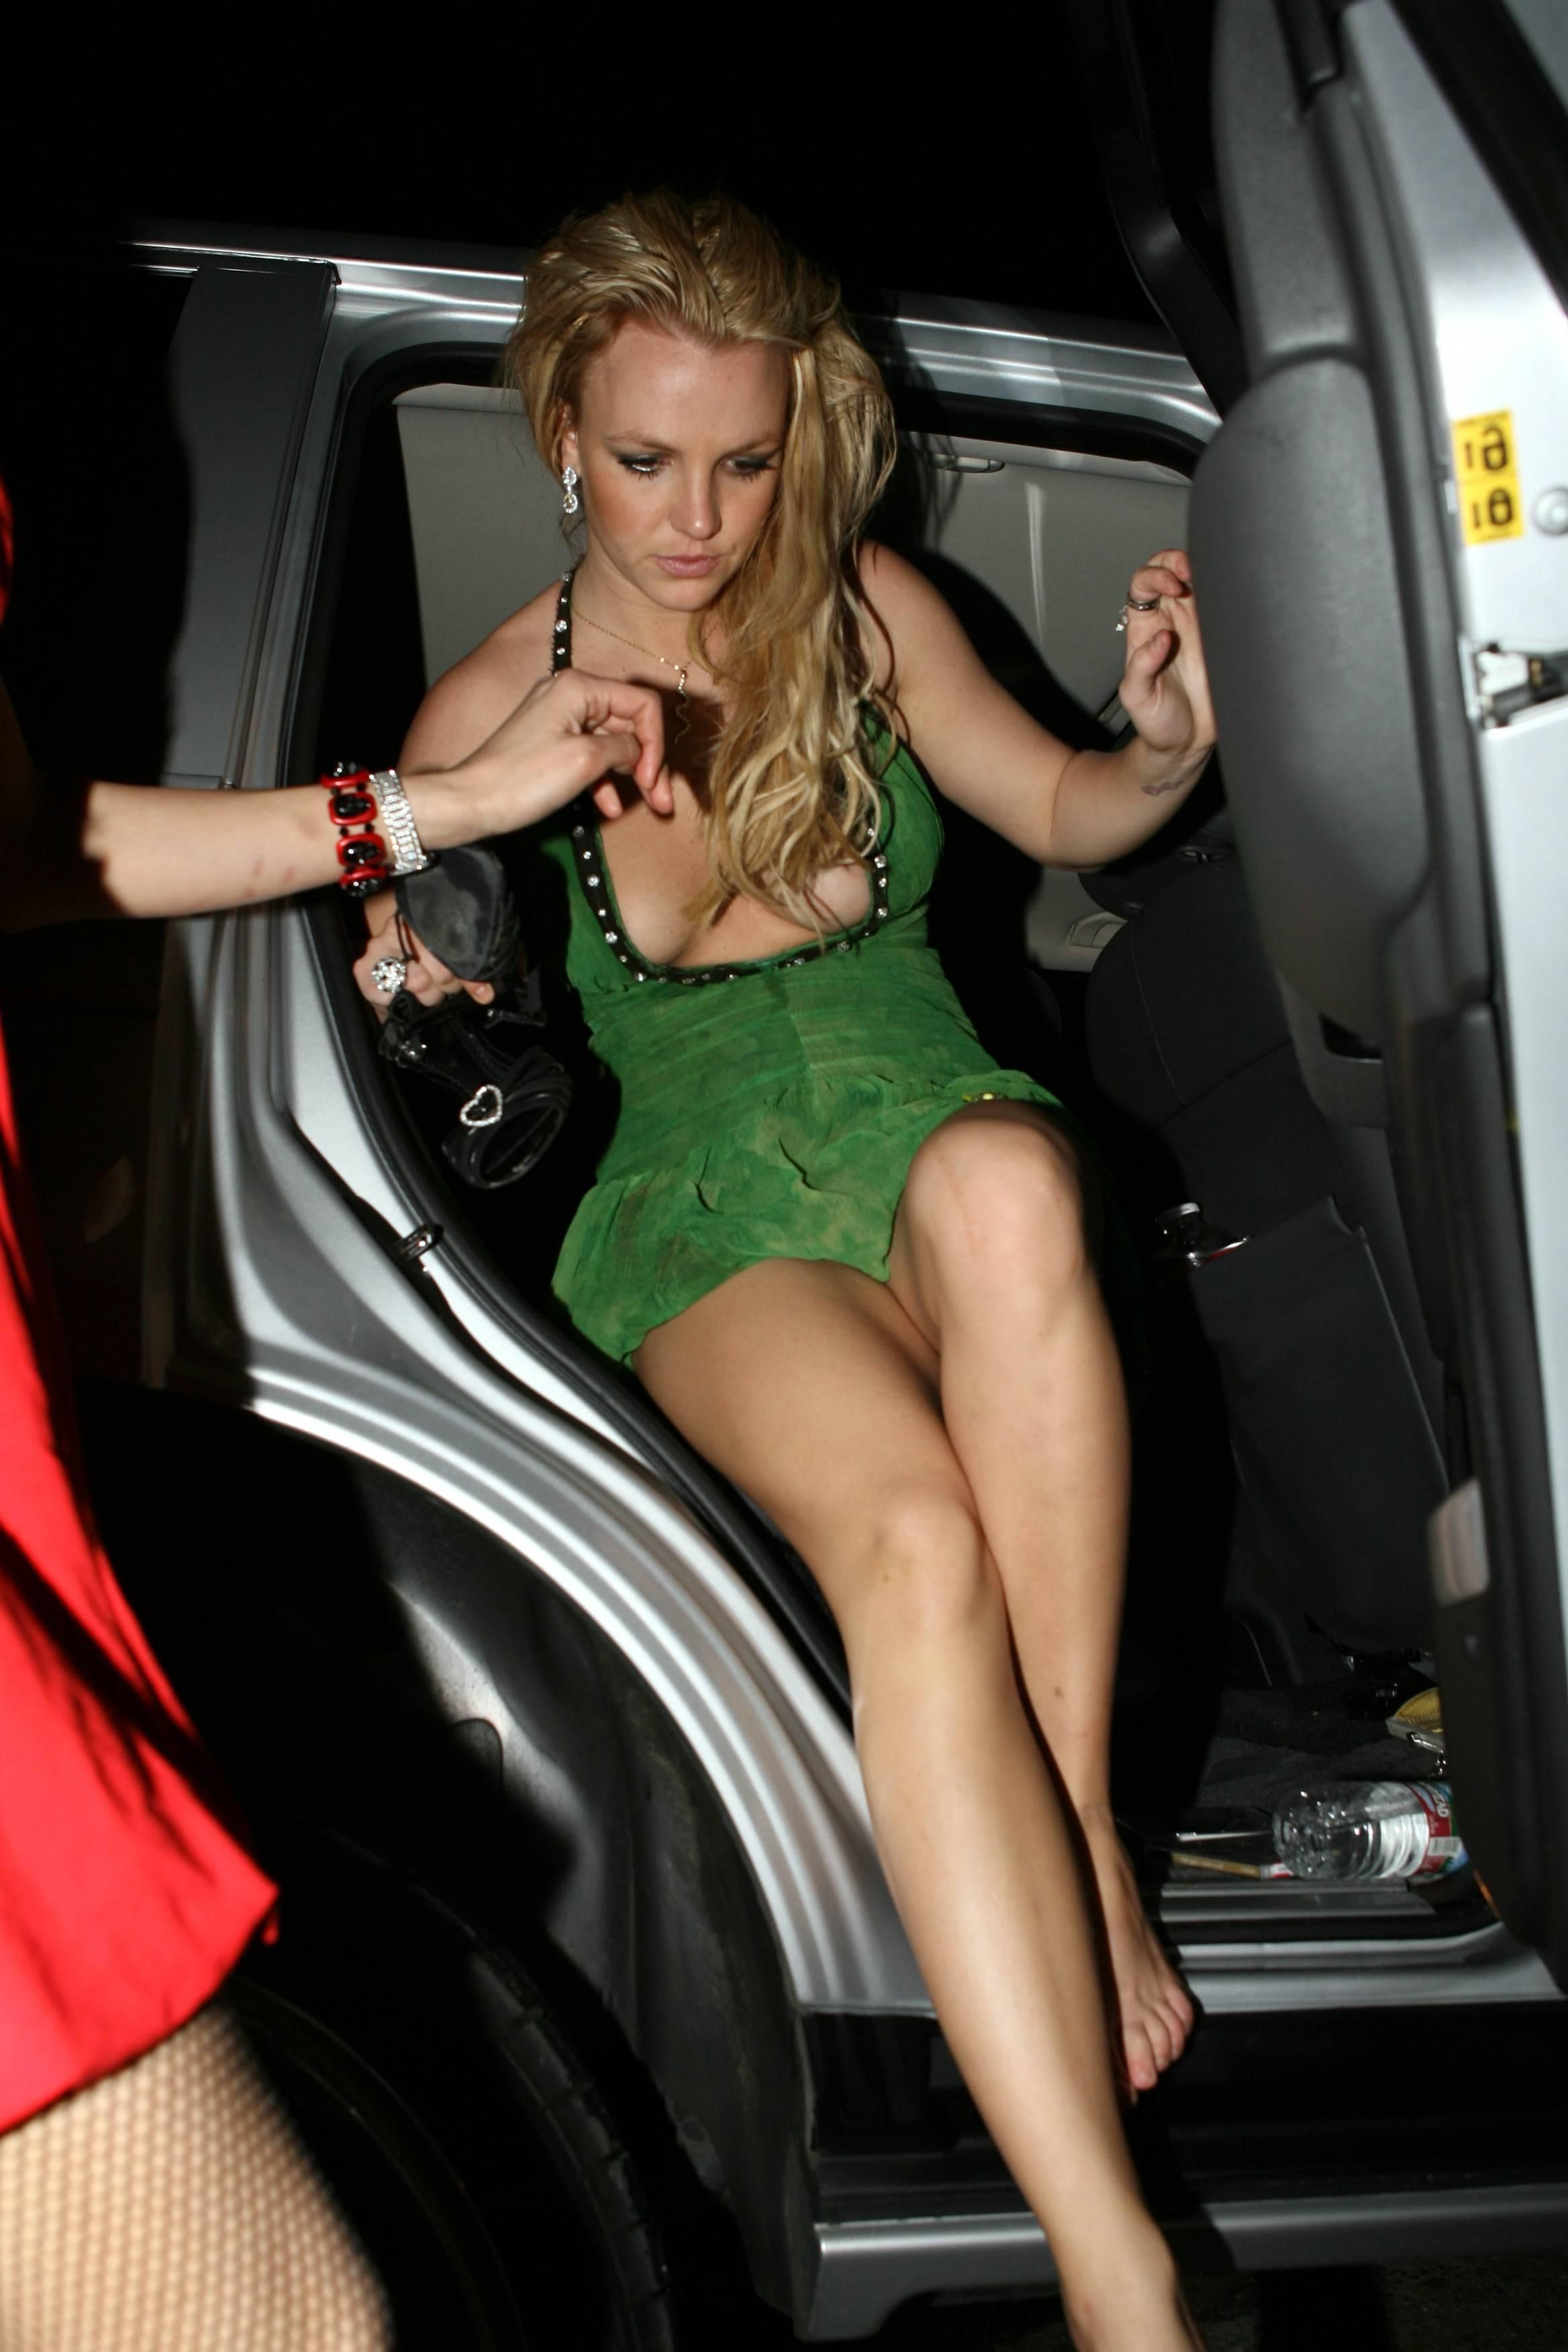 Upskirt spear Britany picture